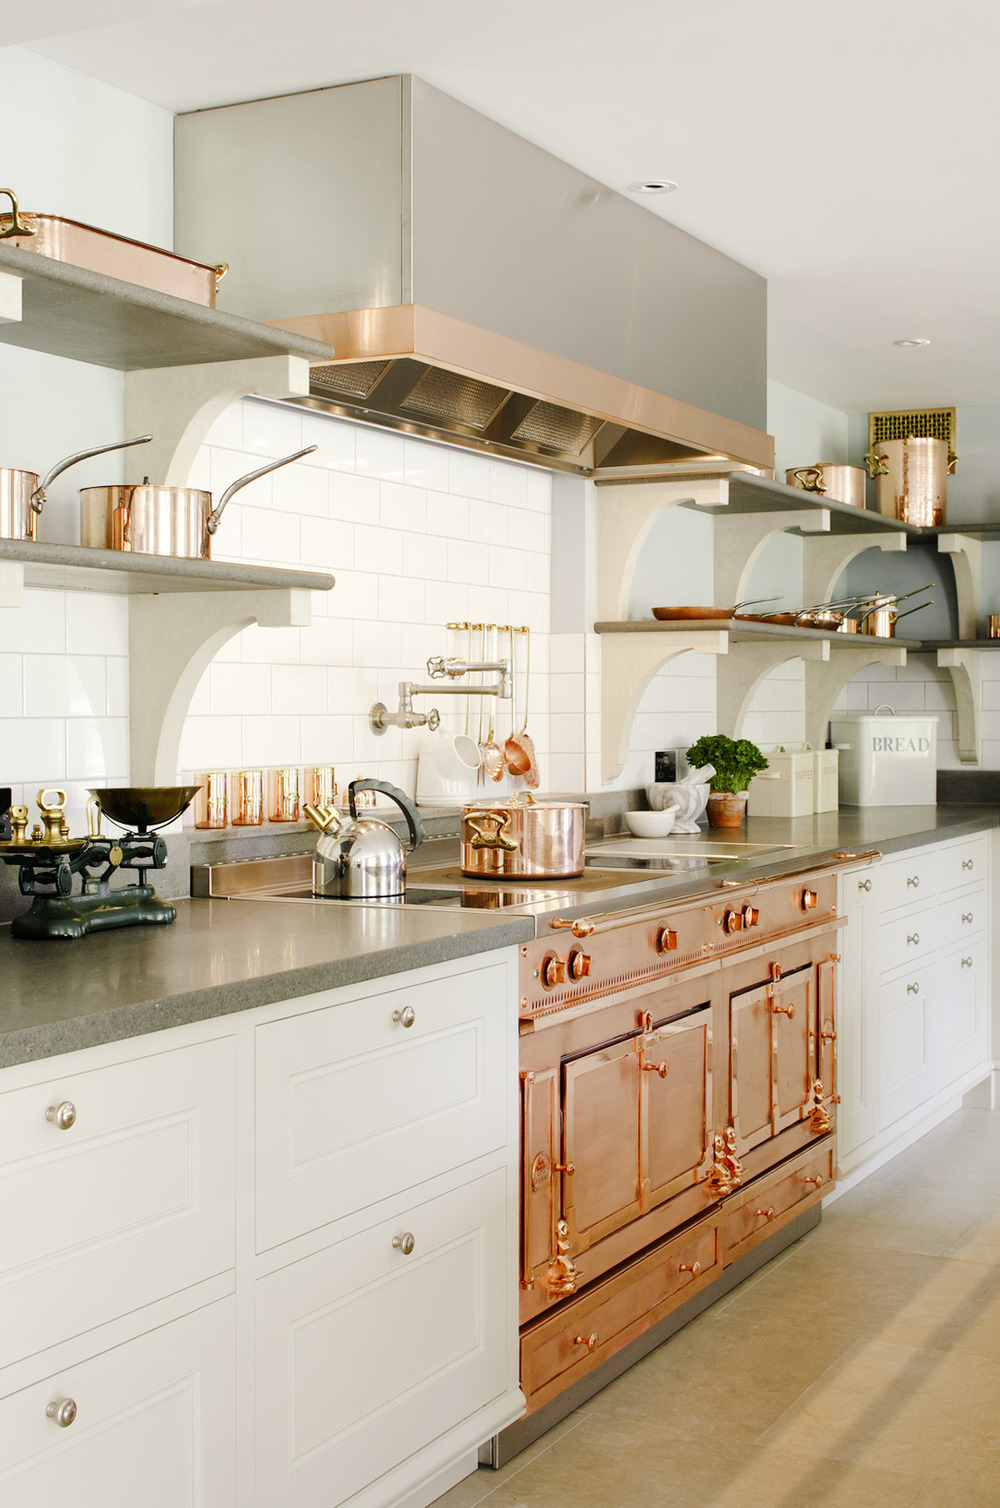 Design Elements Copper in the kitchen